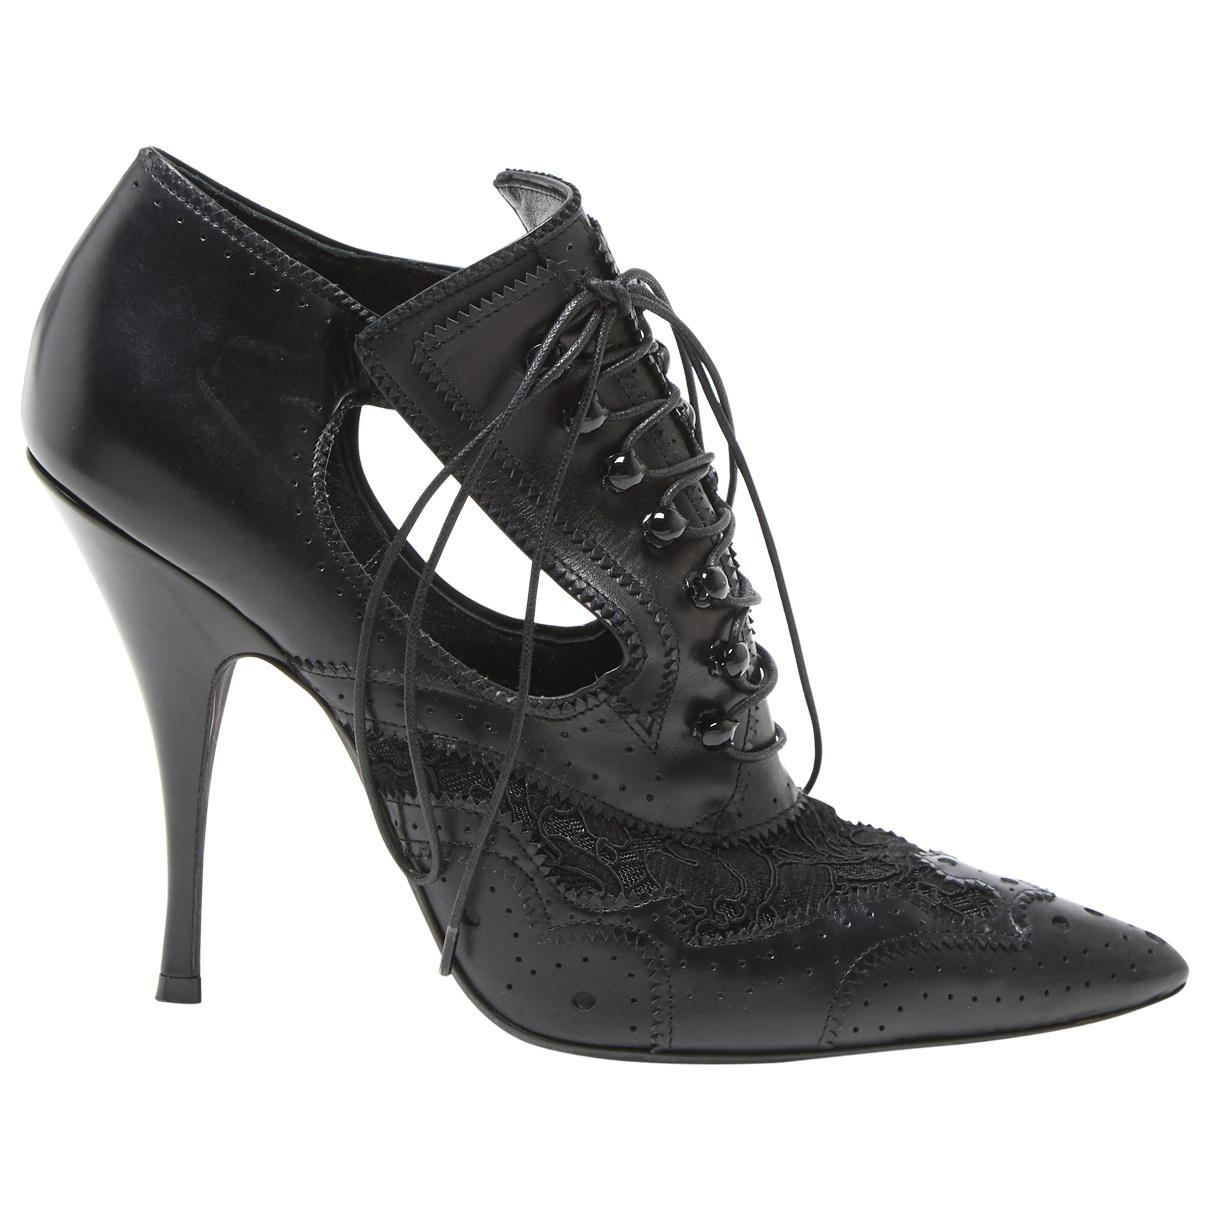 Pre-owned - Leather lace up boots Givenchy eIXJuSSn1p